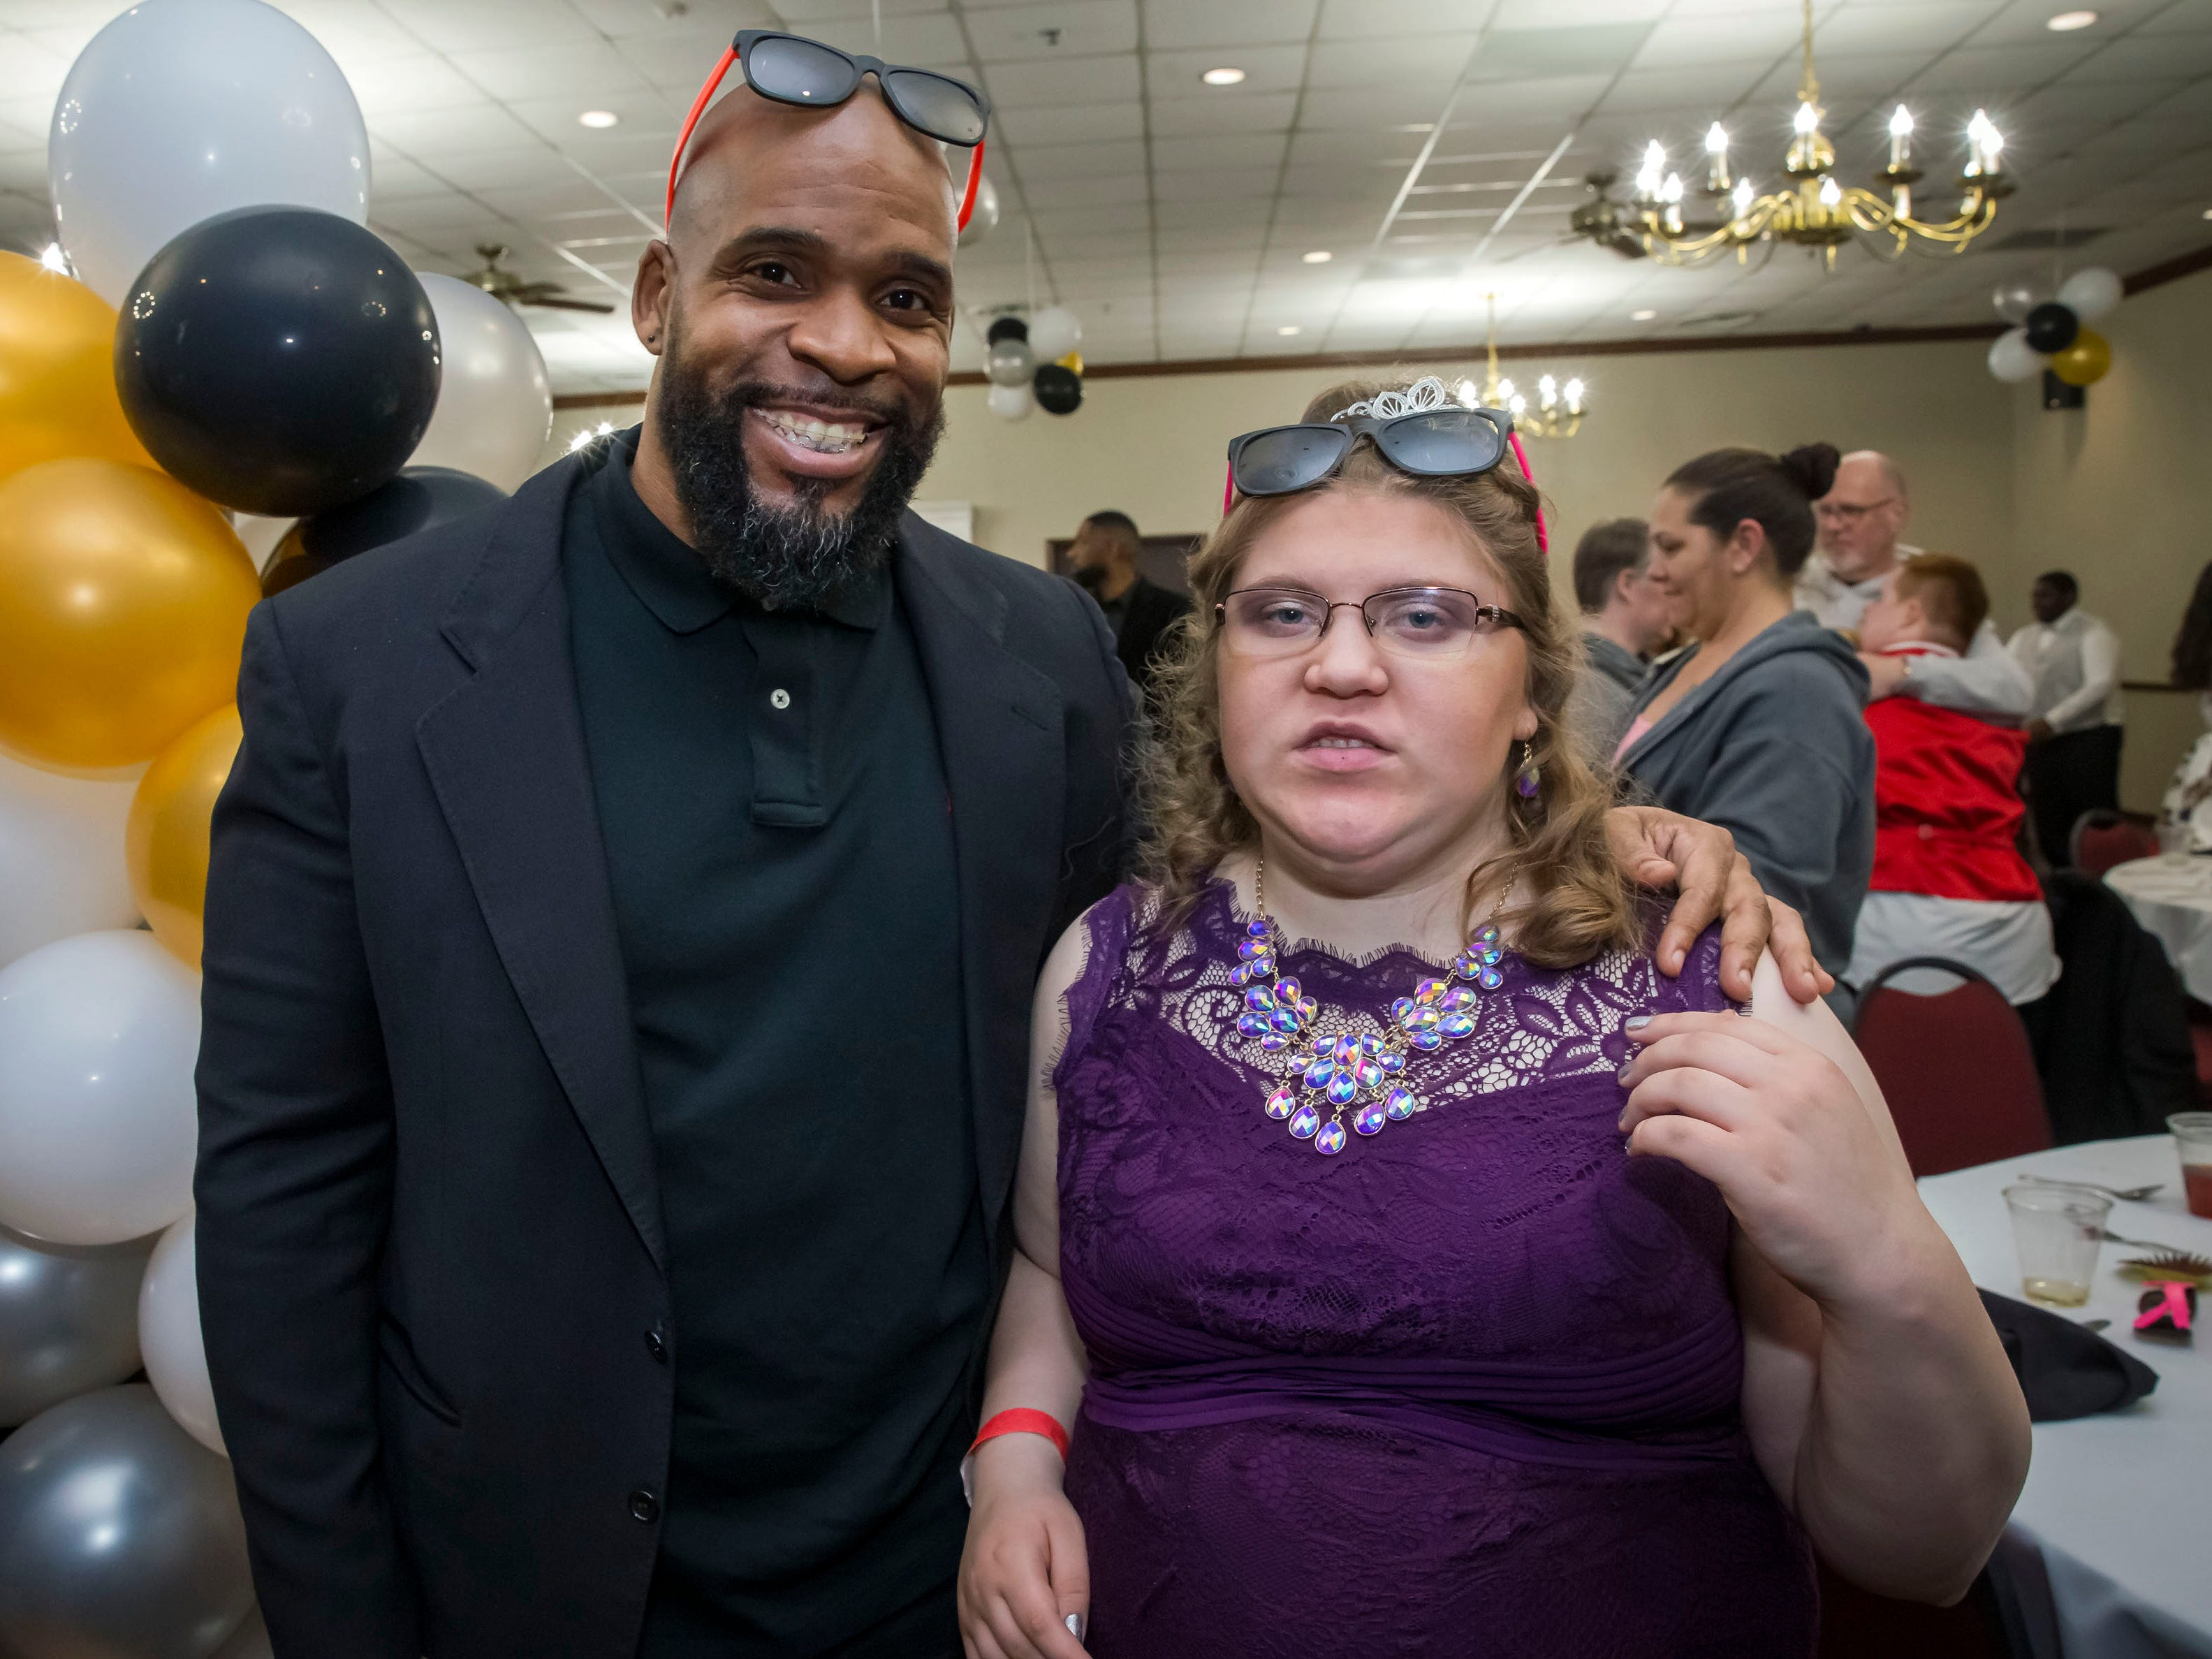 Blackman High coach Dwone Hicks and student Kayla Capps were among those at the Rutherford County Schools special needs prom, held Wednesday  at Smyrna Event Center.